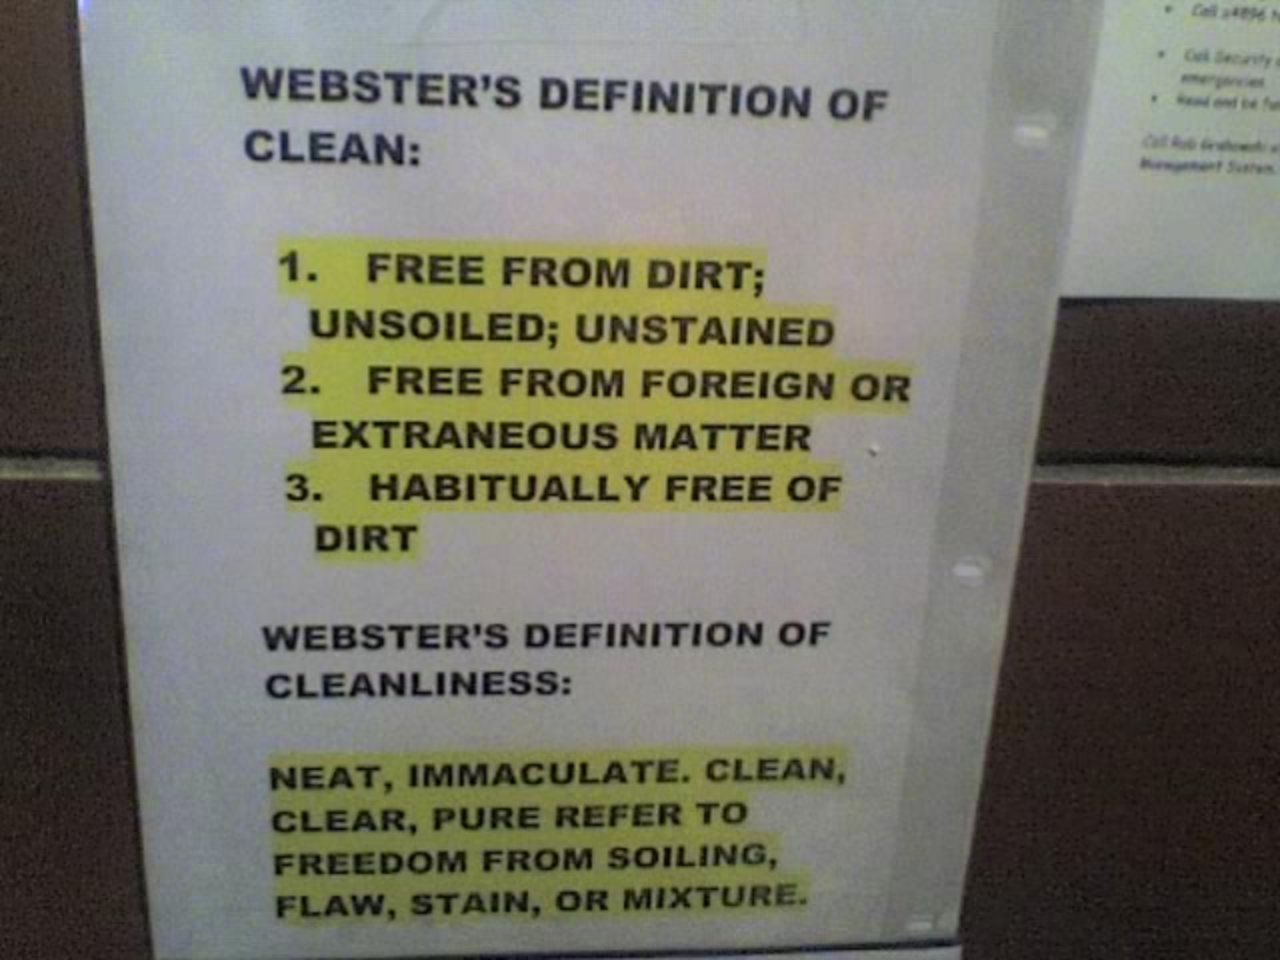 WEBSTER'S DEFINITION OF CLEAN: 1. Free from dirt; unsoiled; unstained 2. Free from foreign or extraneous matter 3. Habitually free of dirt WEBSTER'S DEFINITION OF CLEANLINESS: Neat, immaculate, clean, clear, pure refer to freedom from soiling, flaw, stain or mixture